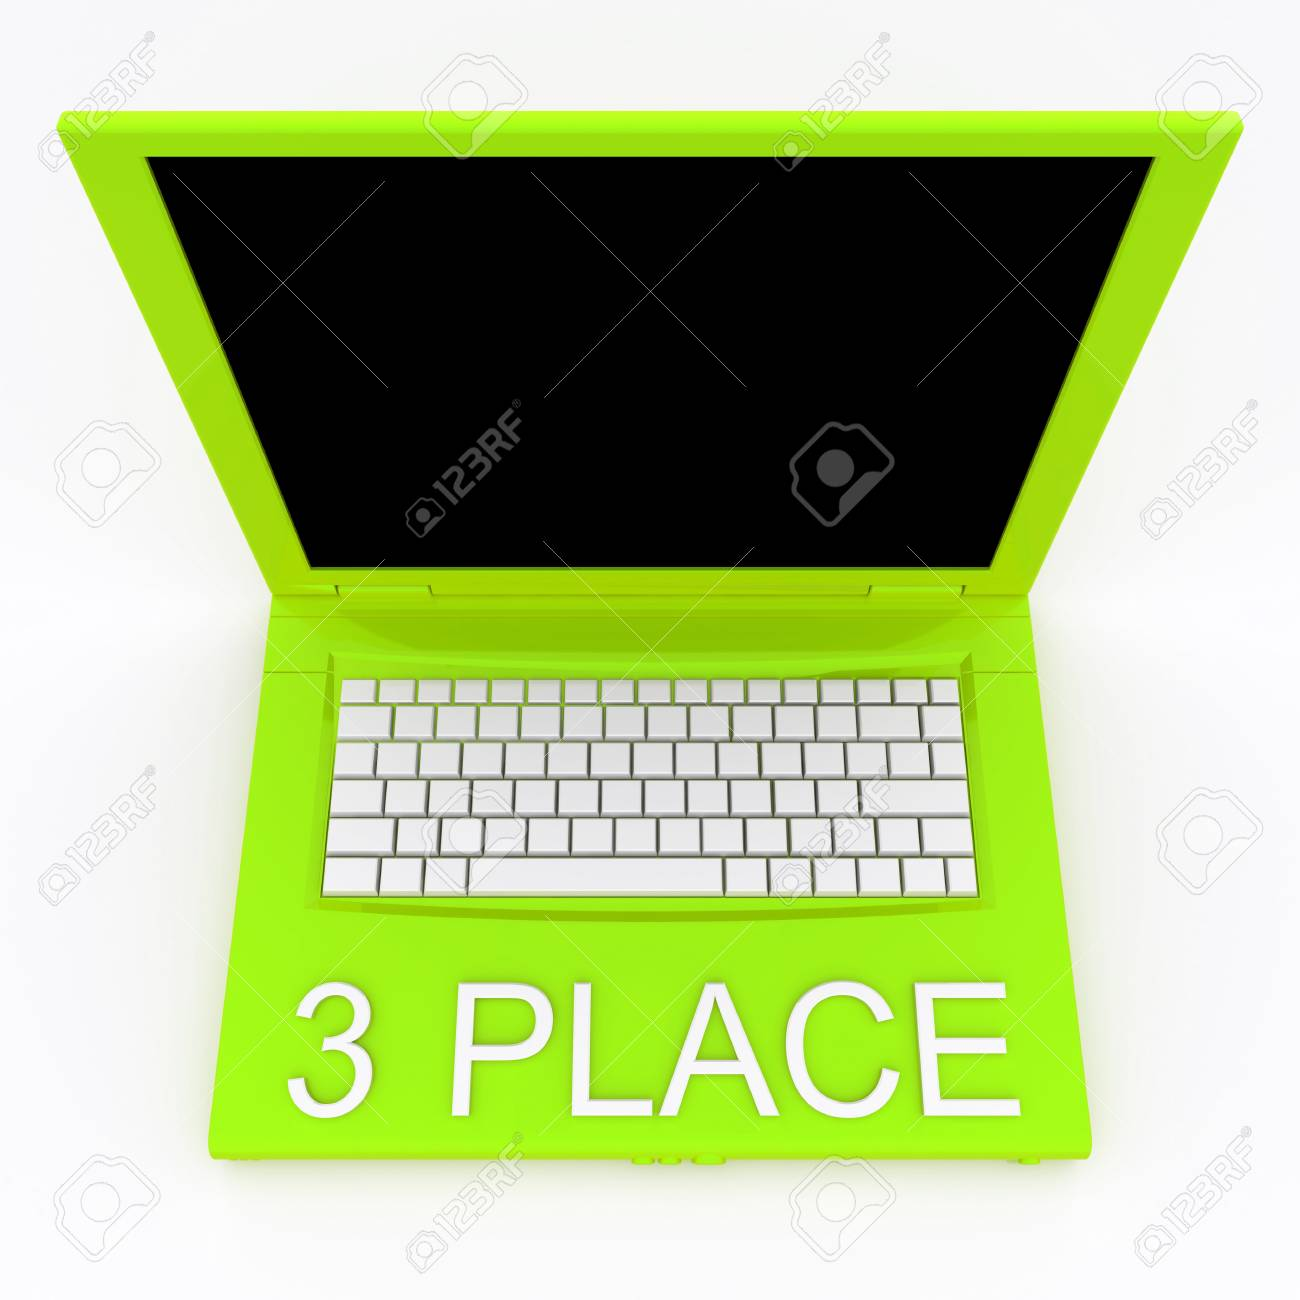 3D blank laptop computer with 3 place word on it Stock Photo - 9920905